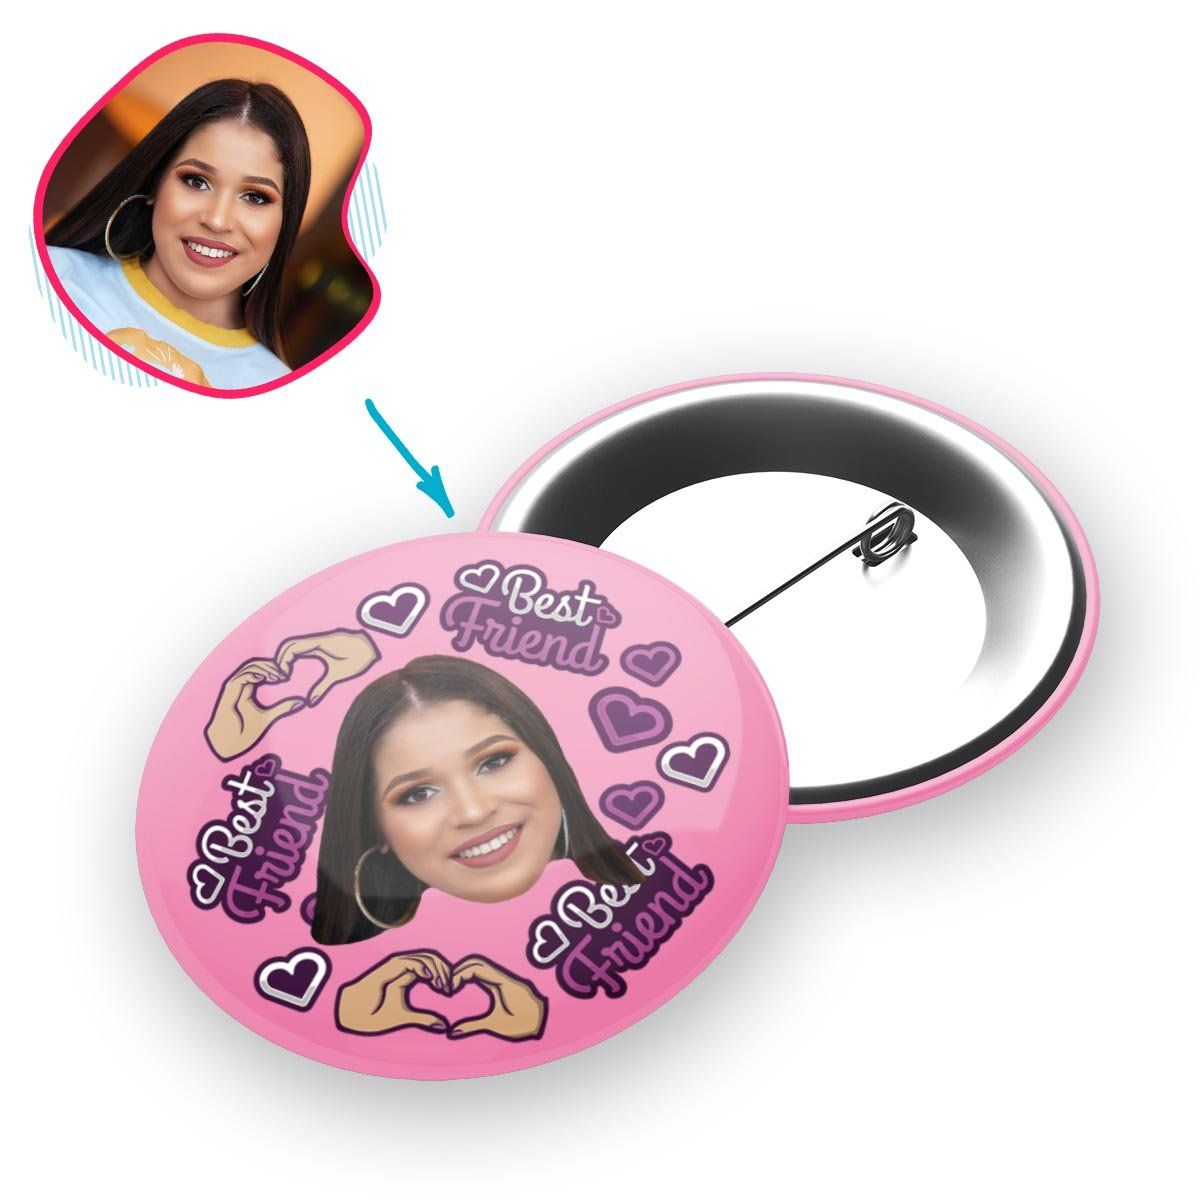 BFF for Her Personalized Pin Button